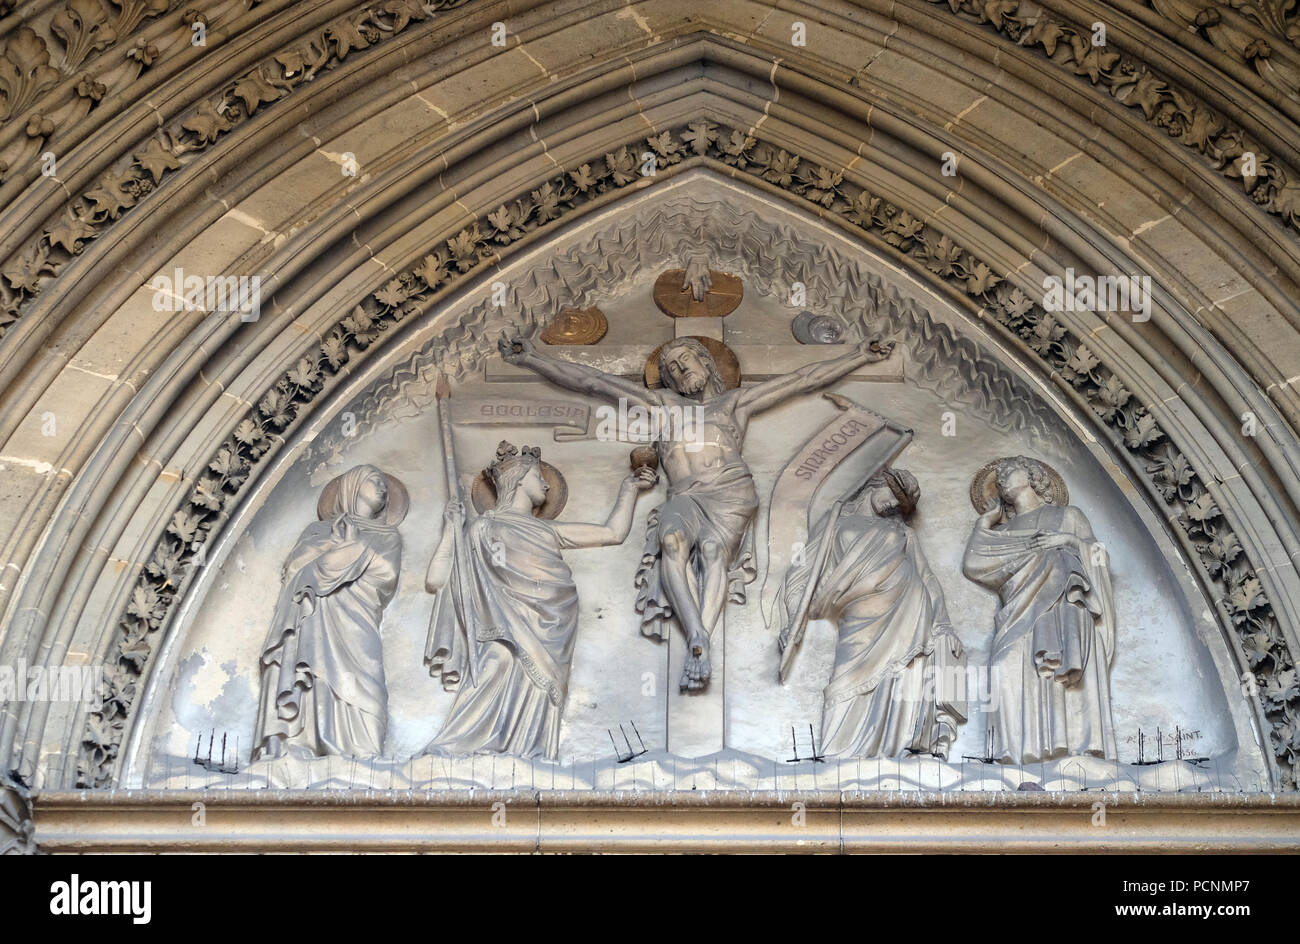 Crucifixion bass relief on the portal of the Basilica of Saint Clotilde in Paris, France Stock Photo